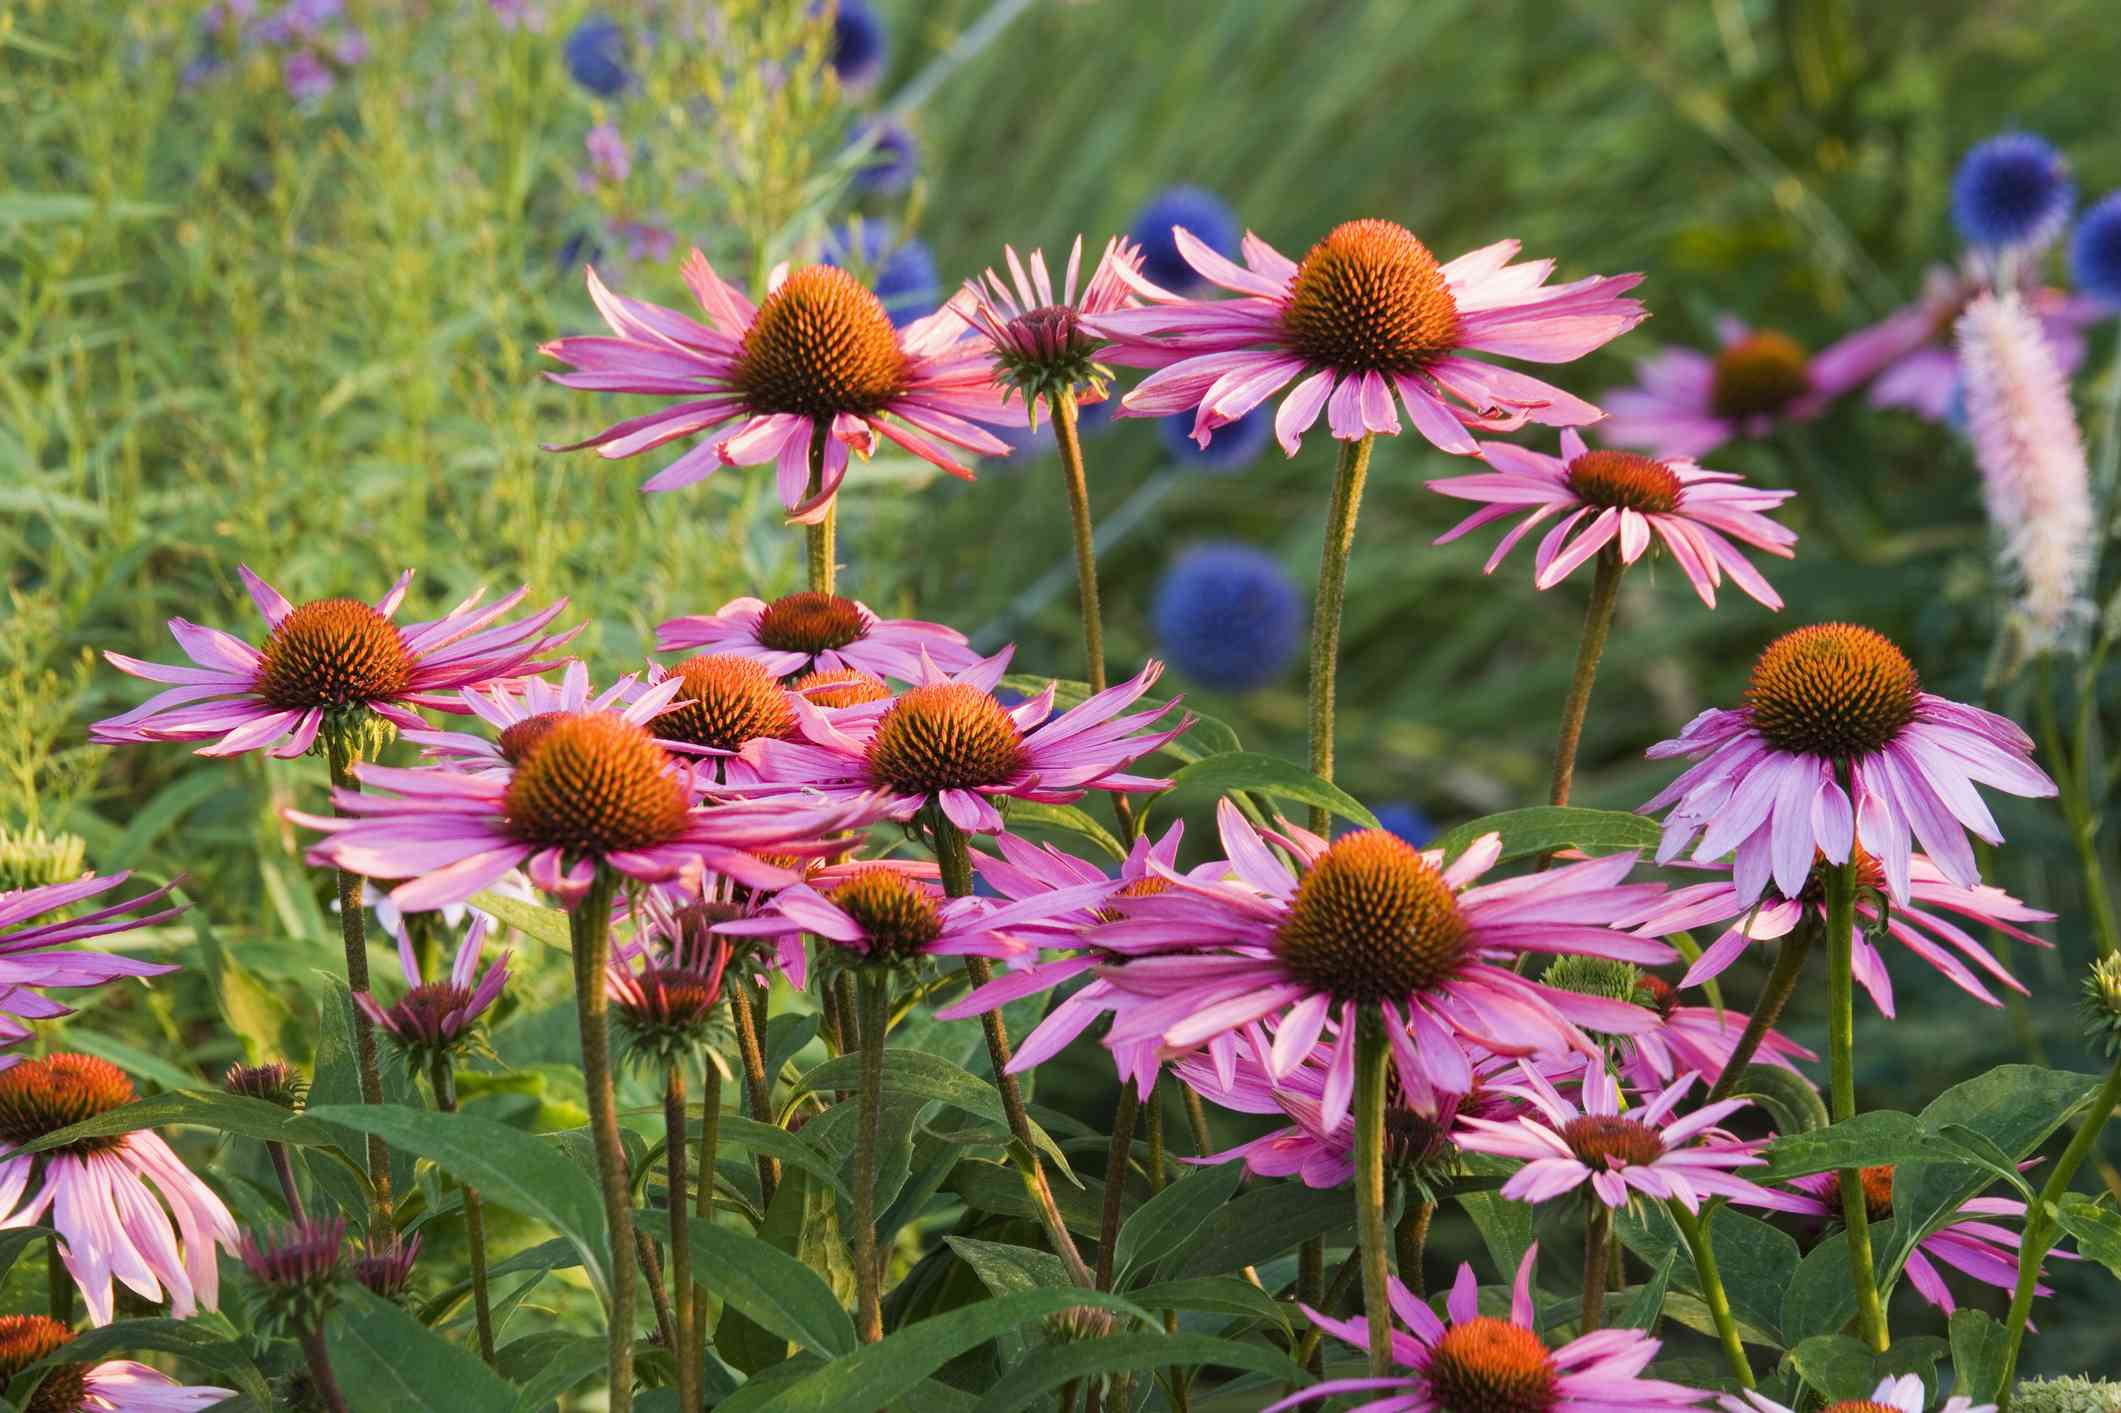 Pink and purple coneflowers